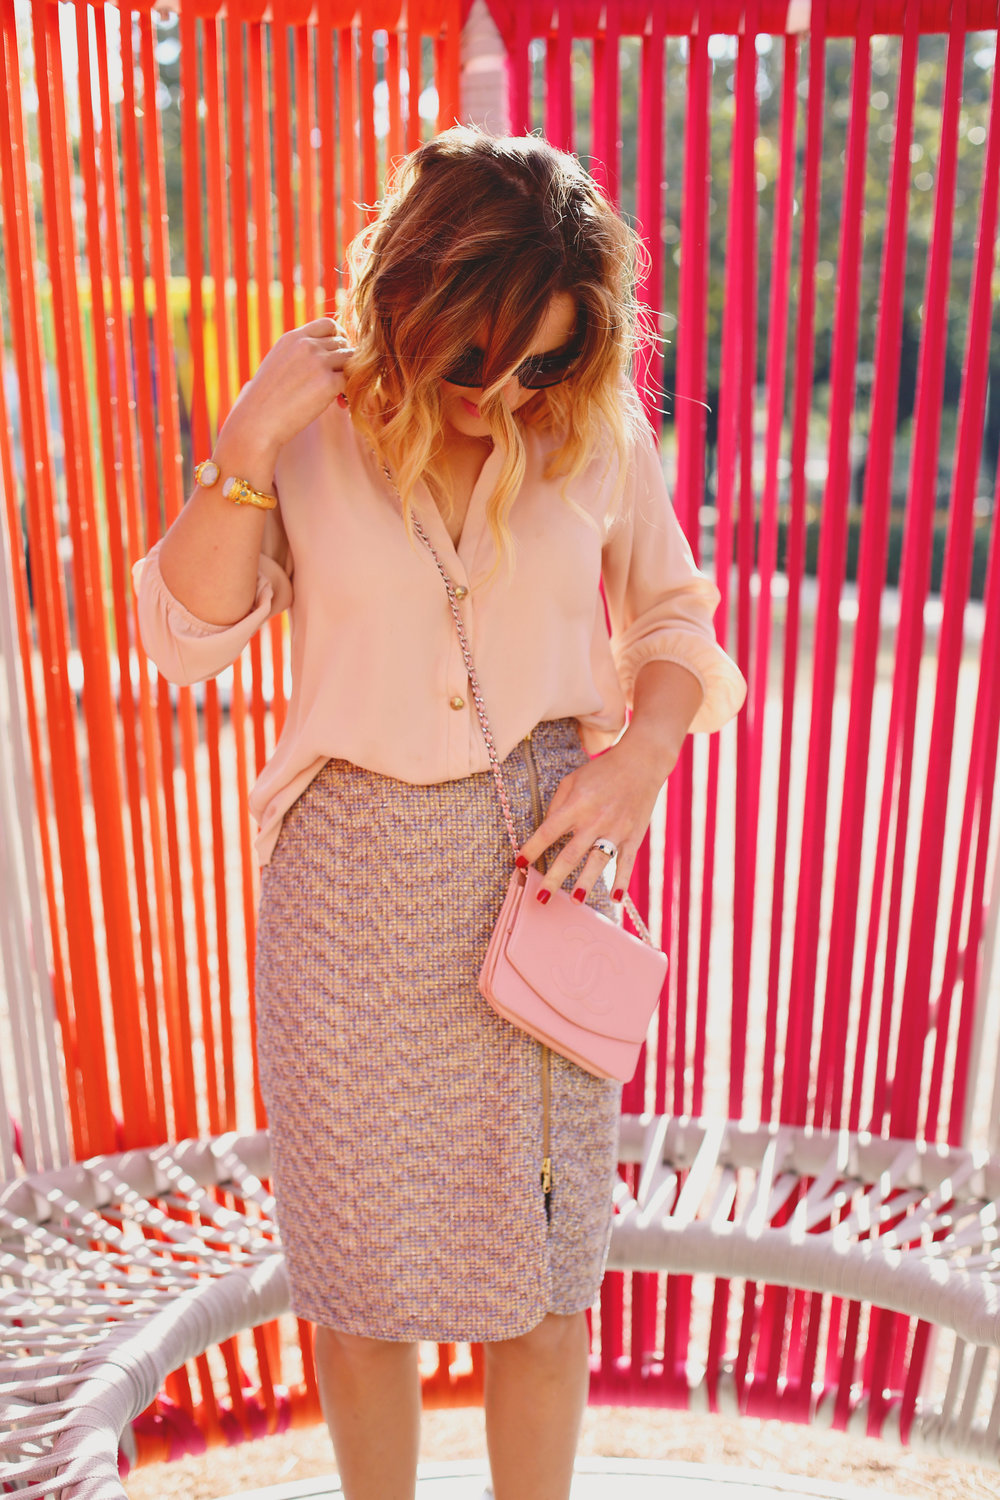 jcrew tweed skirt:julie vos and chanel purse 5.jpg